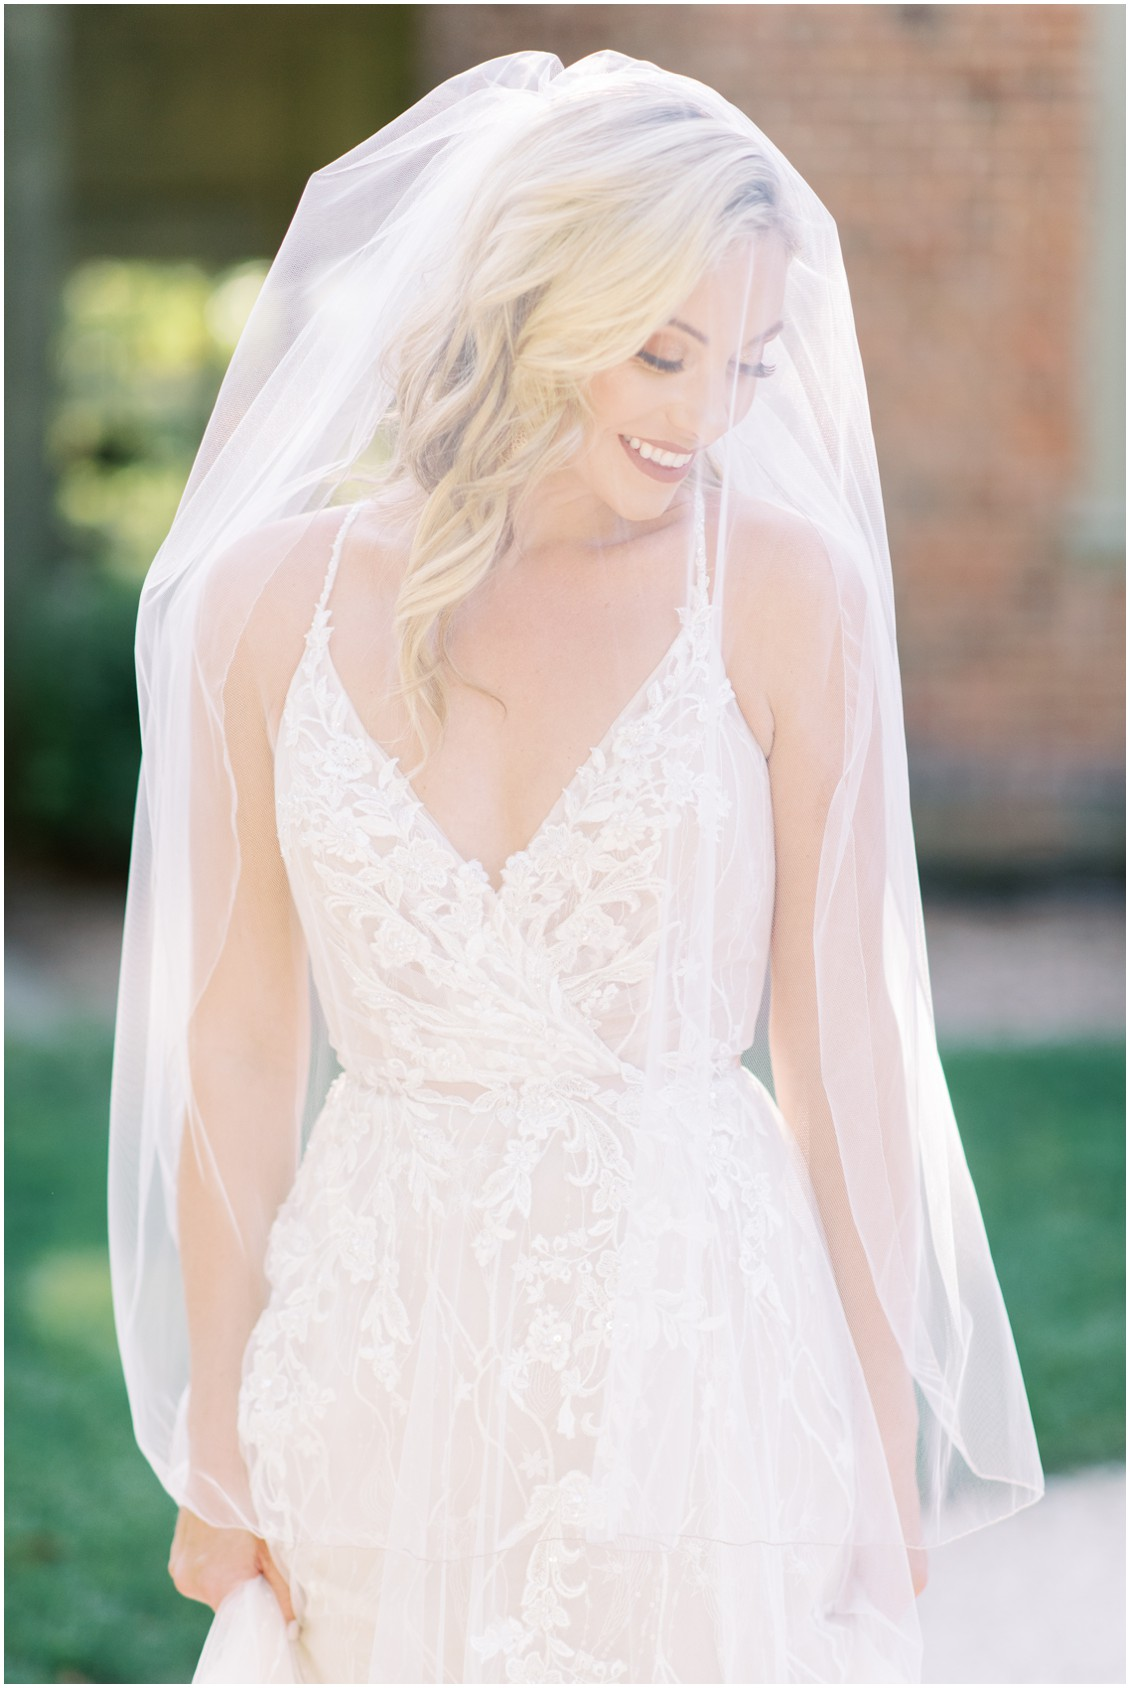 Bridal portrain in lace dress with veil | My Eastern Shore Wedding | Hannah Belle Events | Eastern Shore Tents and Events